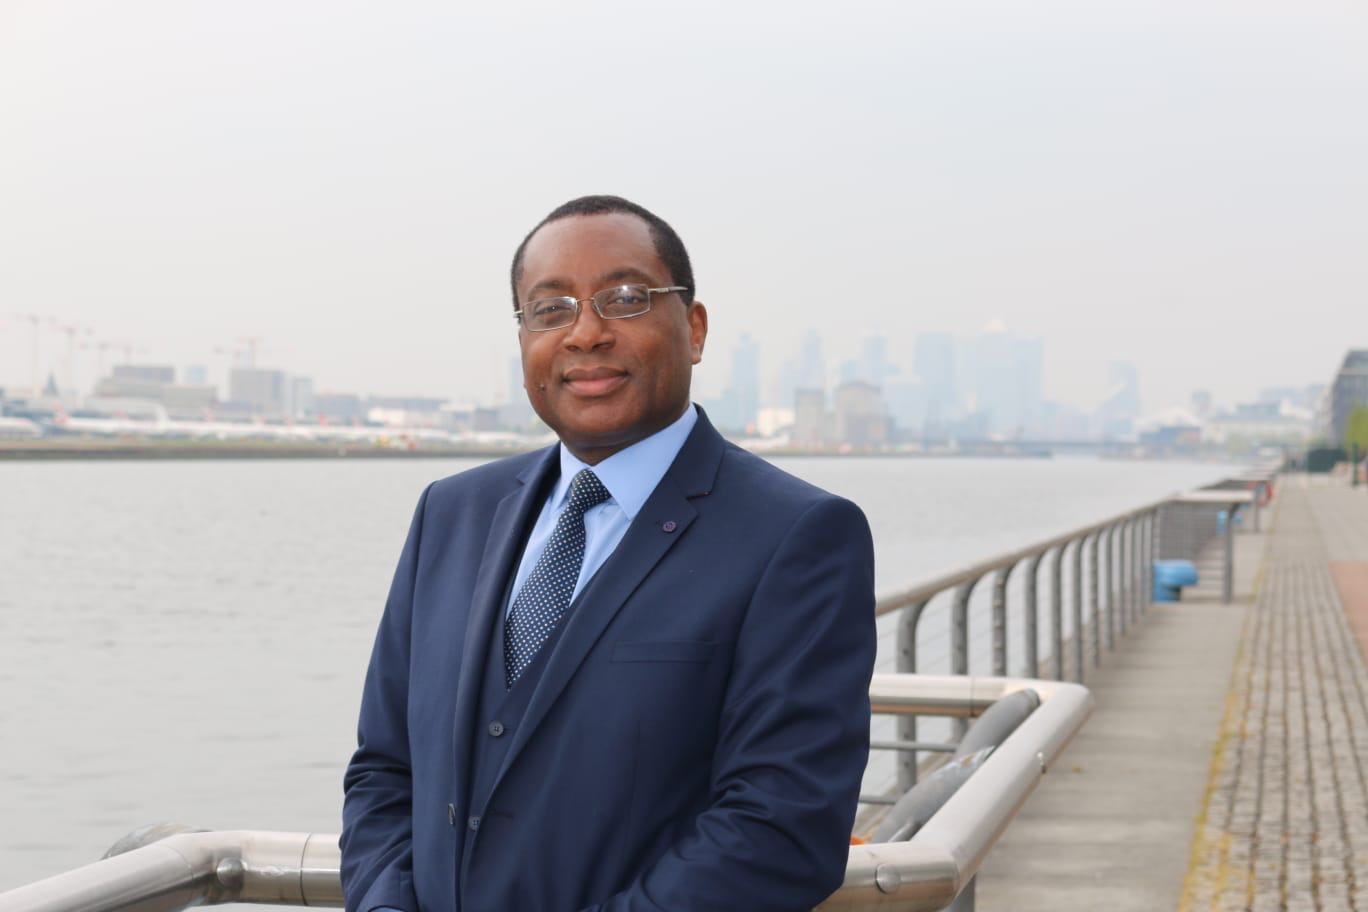 Professor Charles Egbu on South Bank.